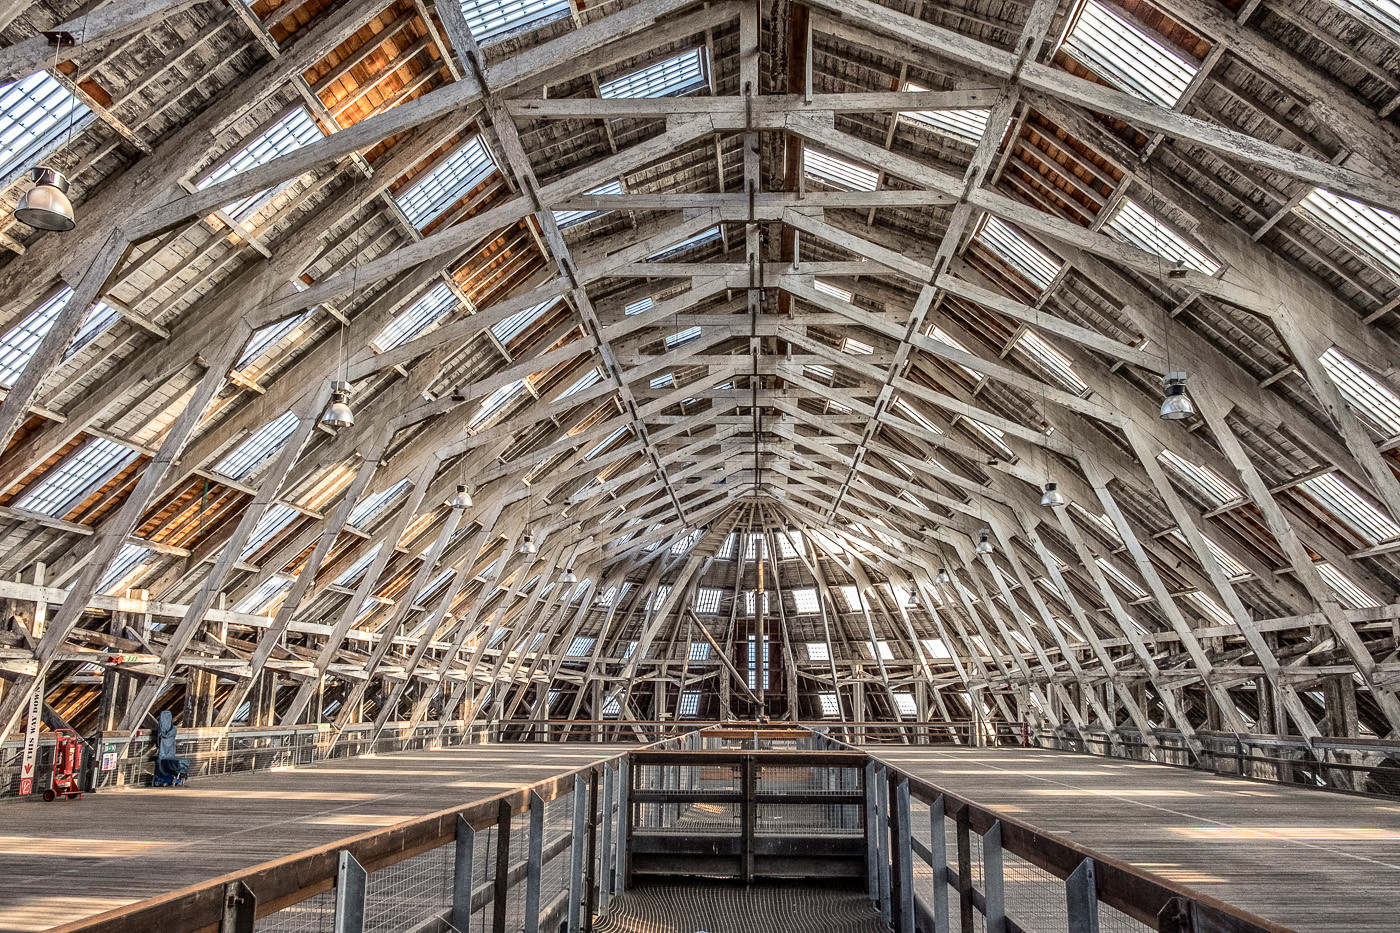 19 No3 COVERED SLIP AT CHATHAM HISTORIC DOCKYARD by Colin Smith